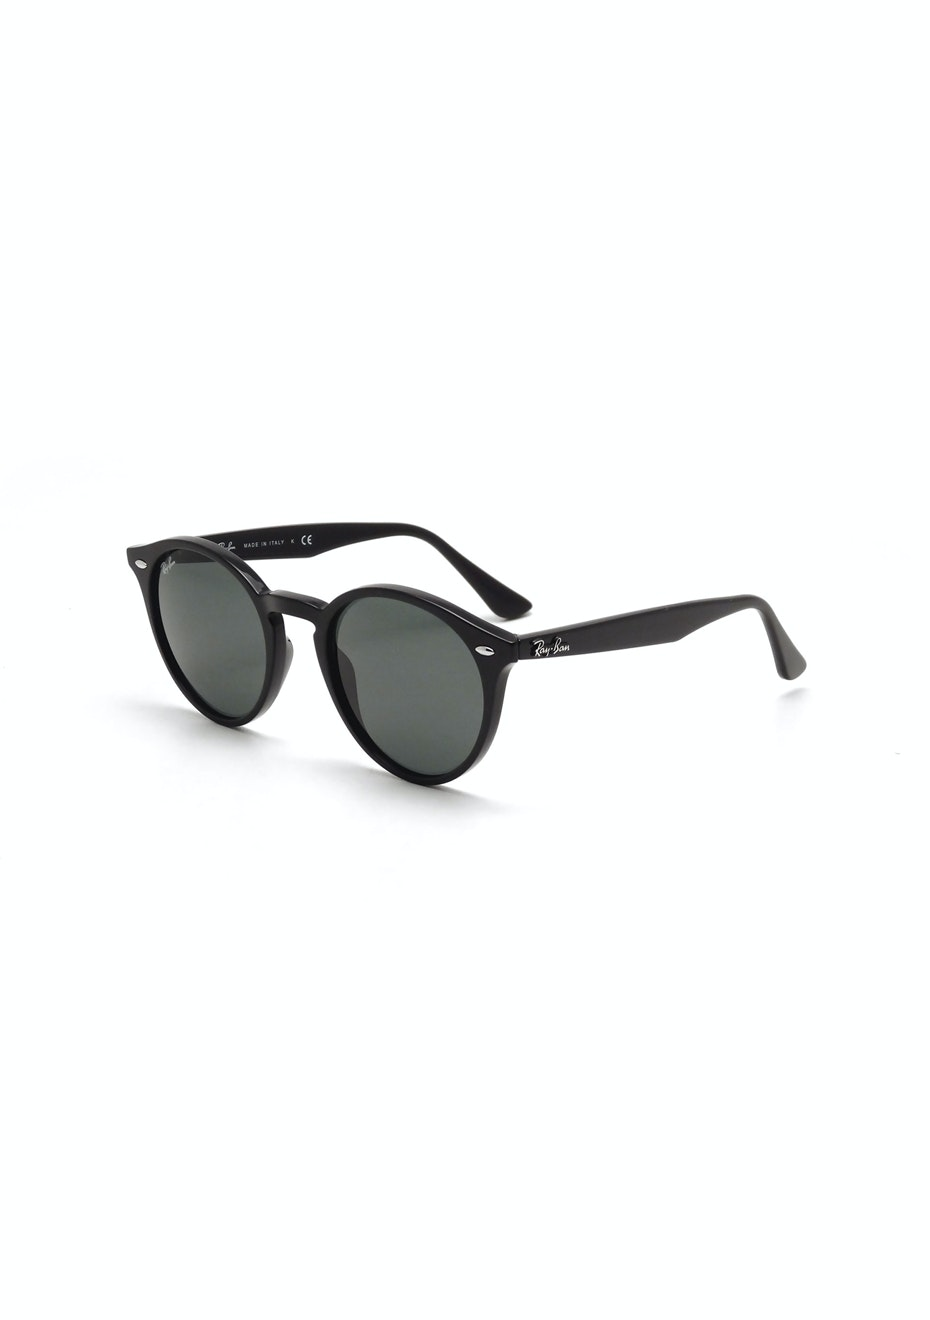 Ray-Ban -  RB2180 601/71/49 - ROUND Black